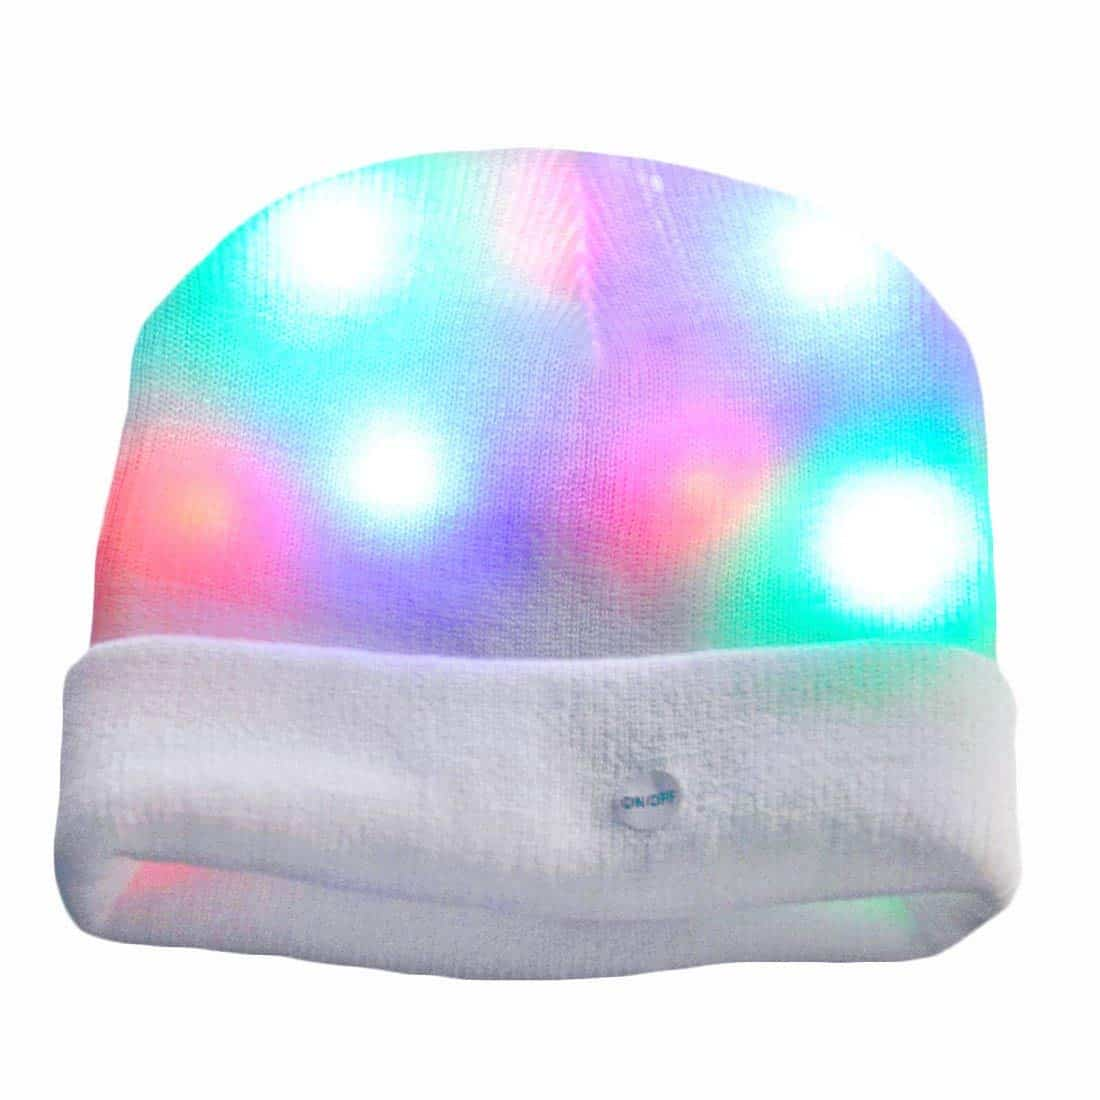 LED lighted hat